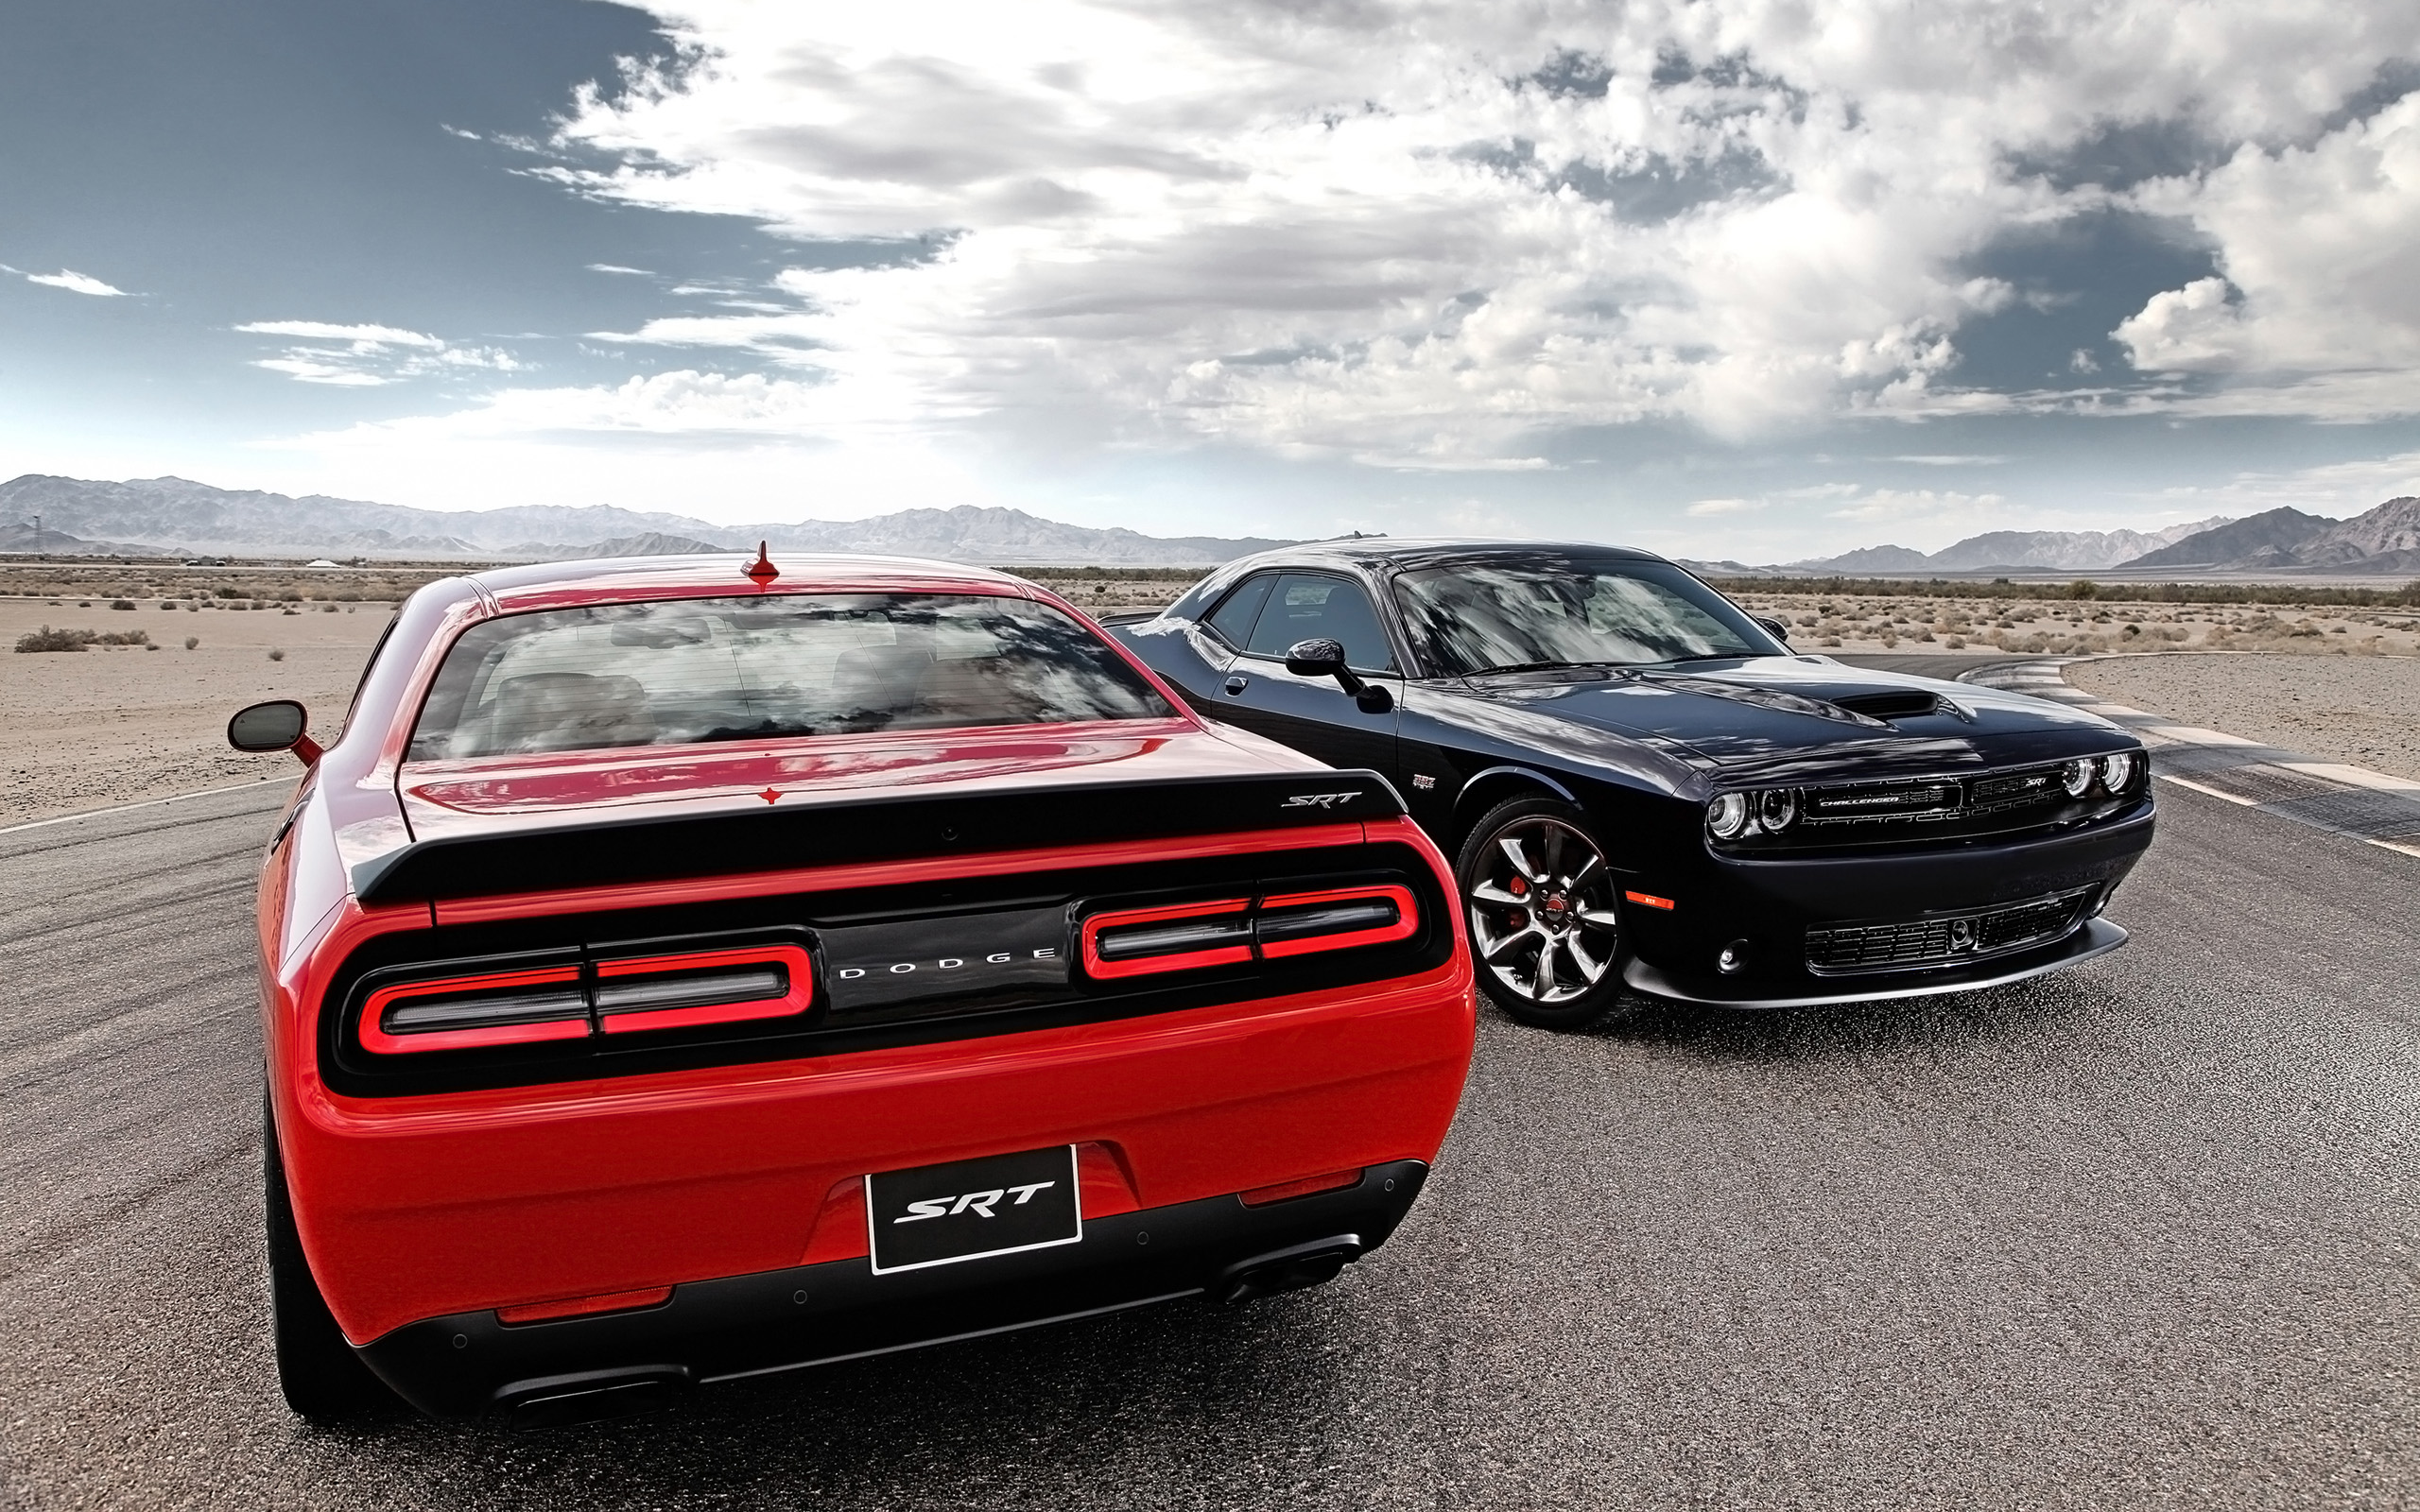 2015 dodge challenger srt cars wallpaper hd car wallpapers id 4484. Black Bedroom Furniture Sets. Home Design Ideas